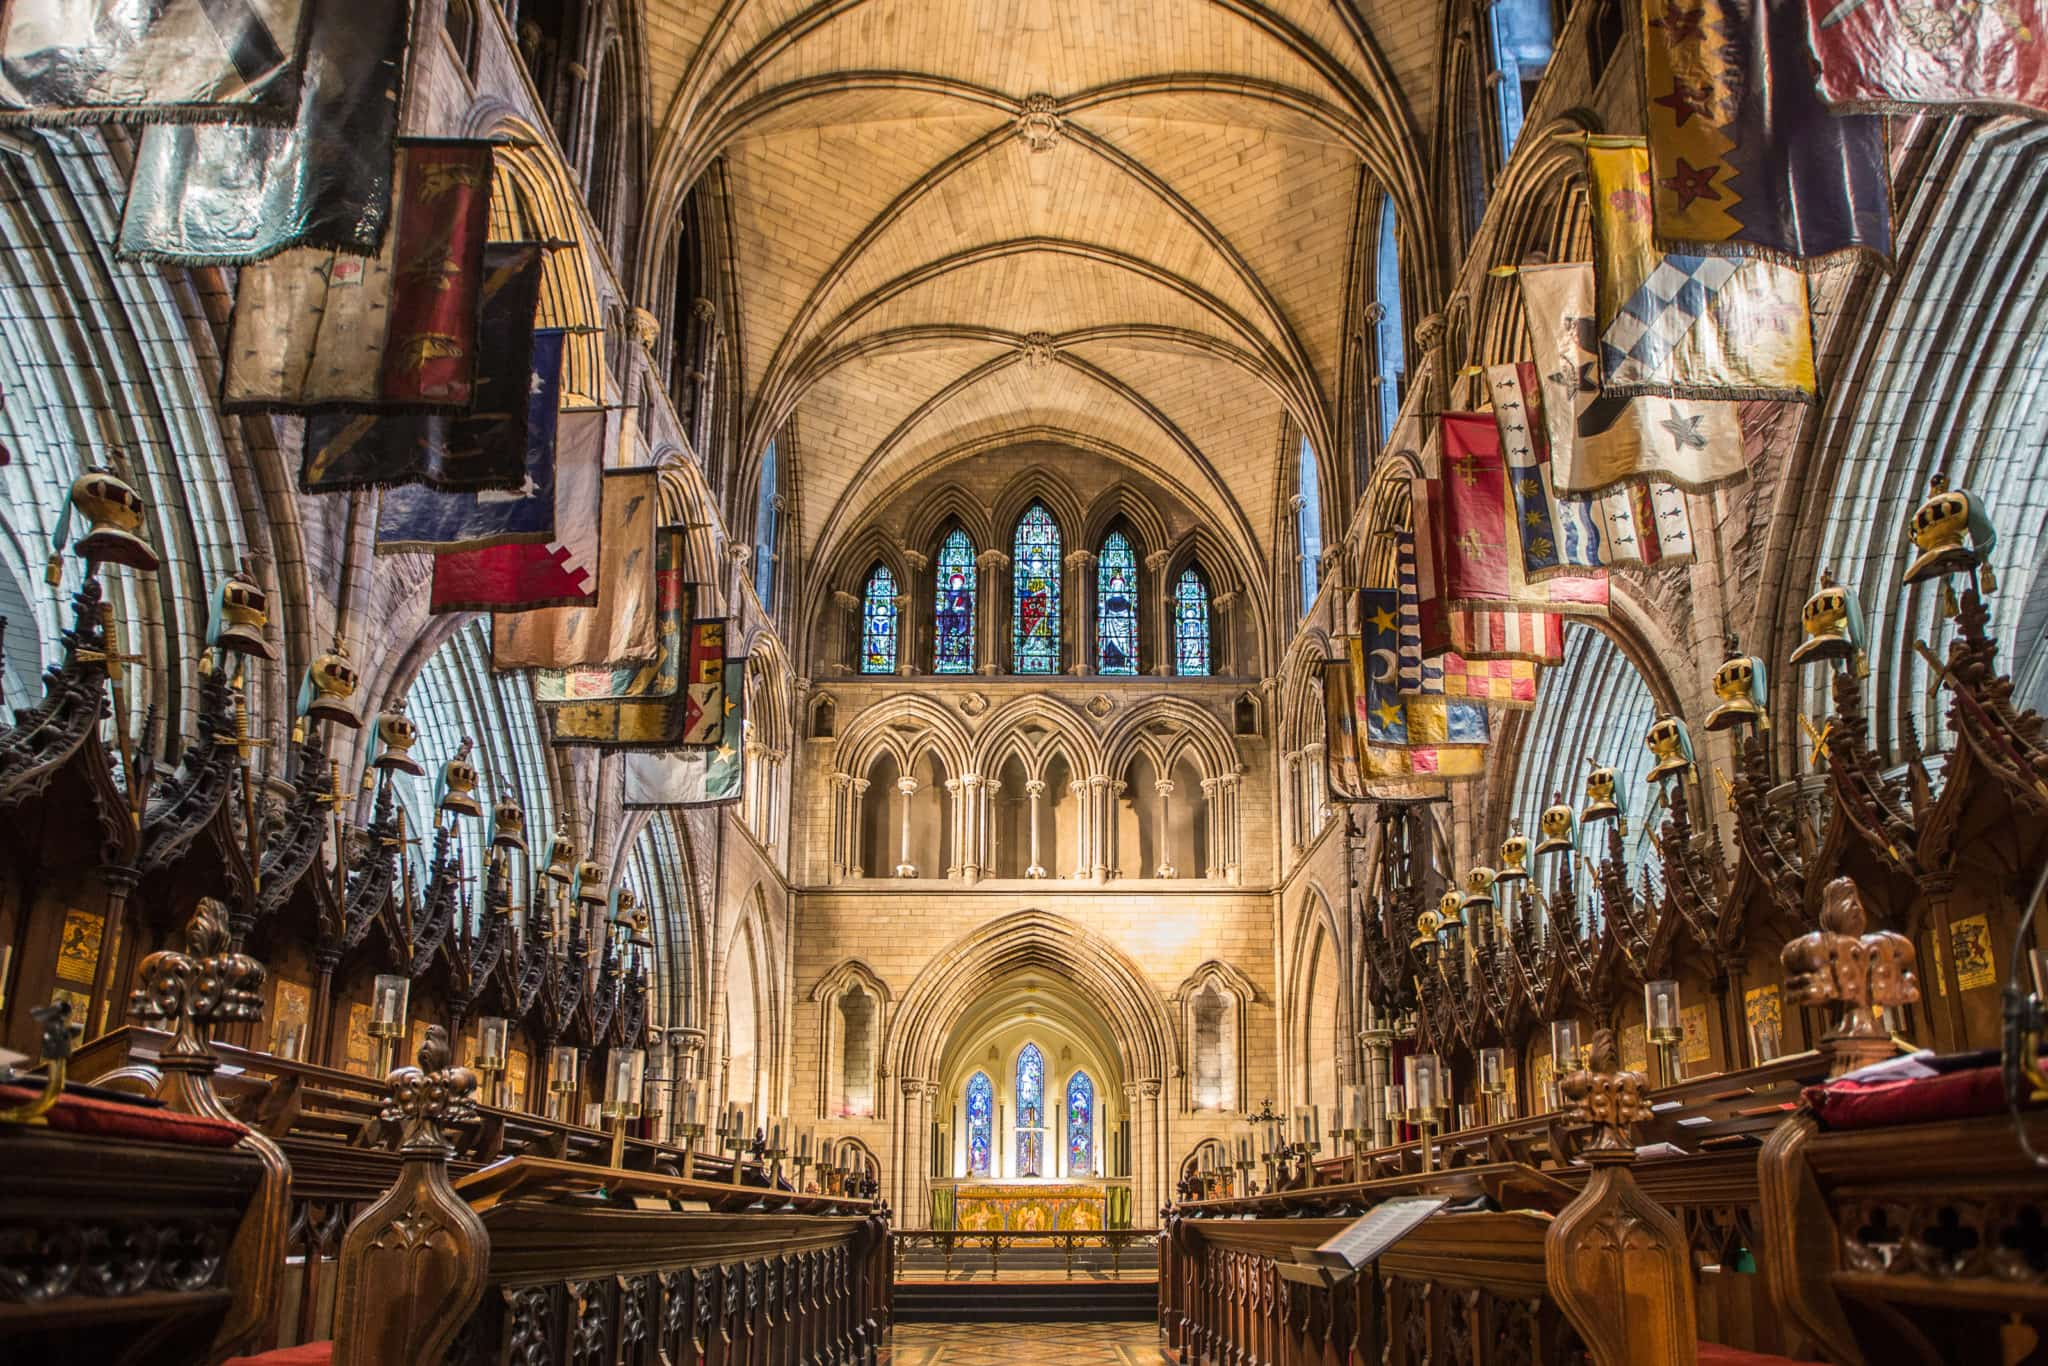 Christchurch Cathedral celebrating Christmas in Ireland